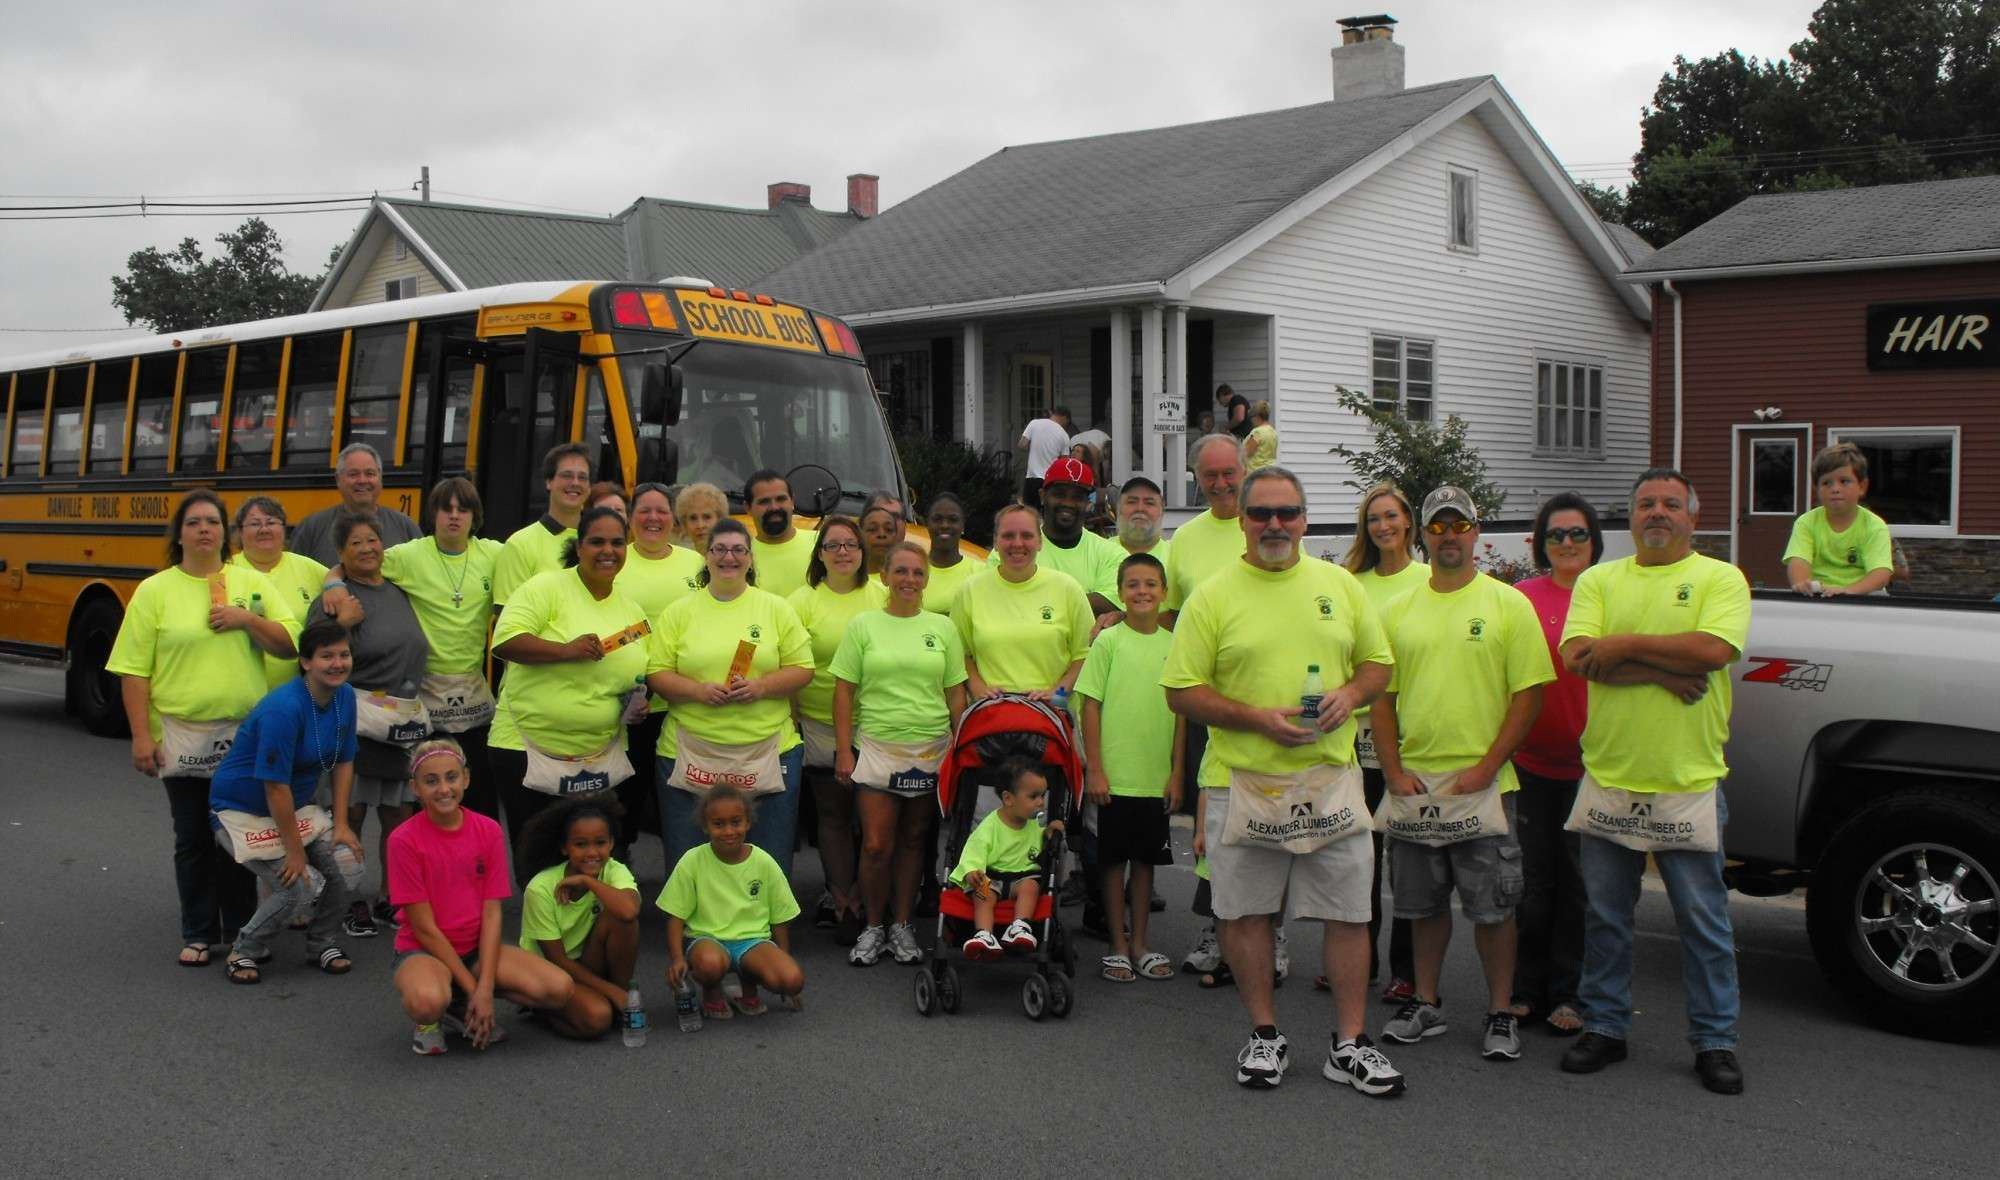 Labor_Day_2014_Danville_Teamsters_group1-e1409613452619